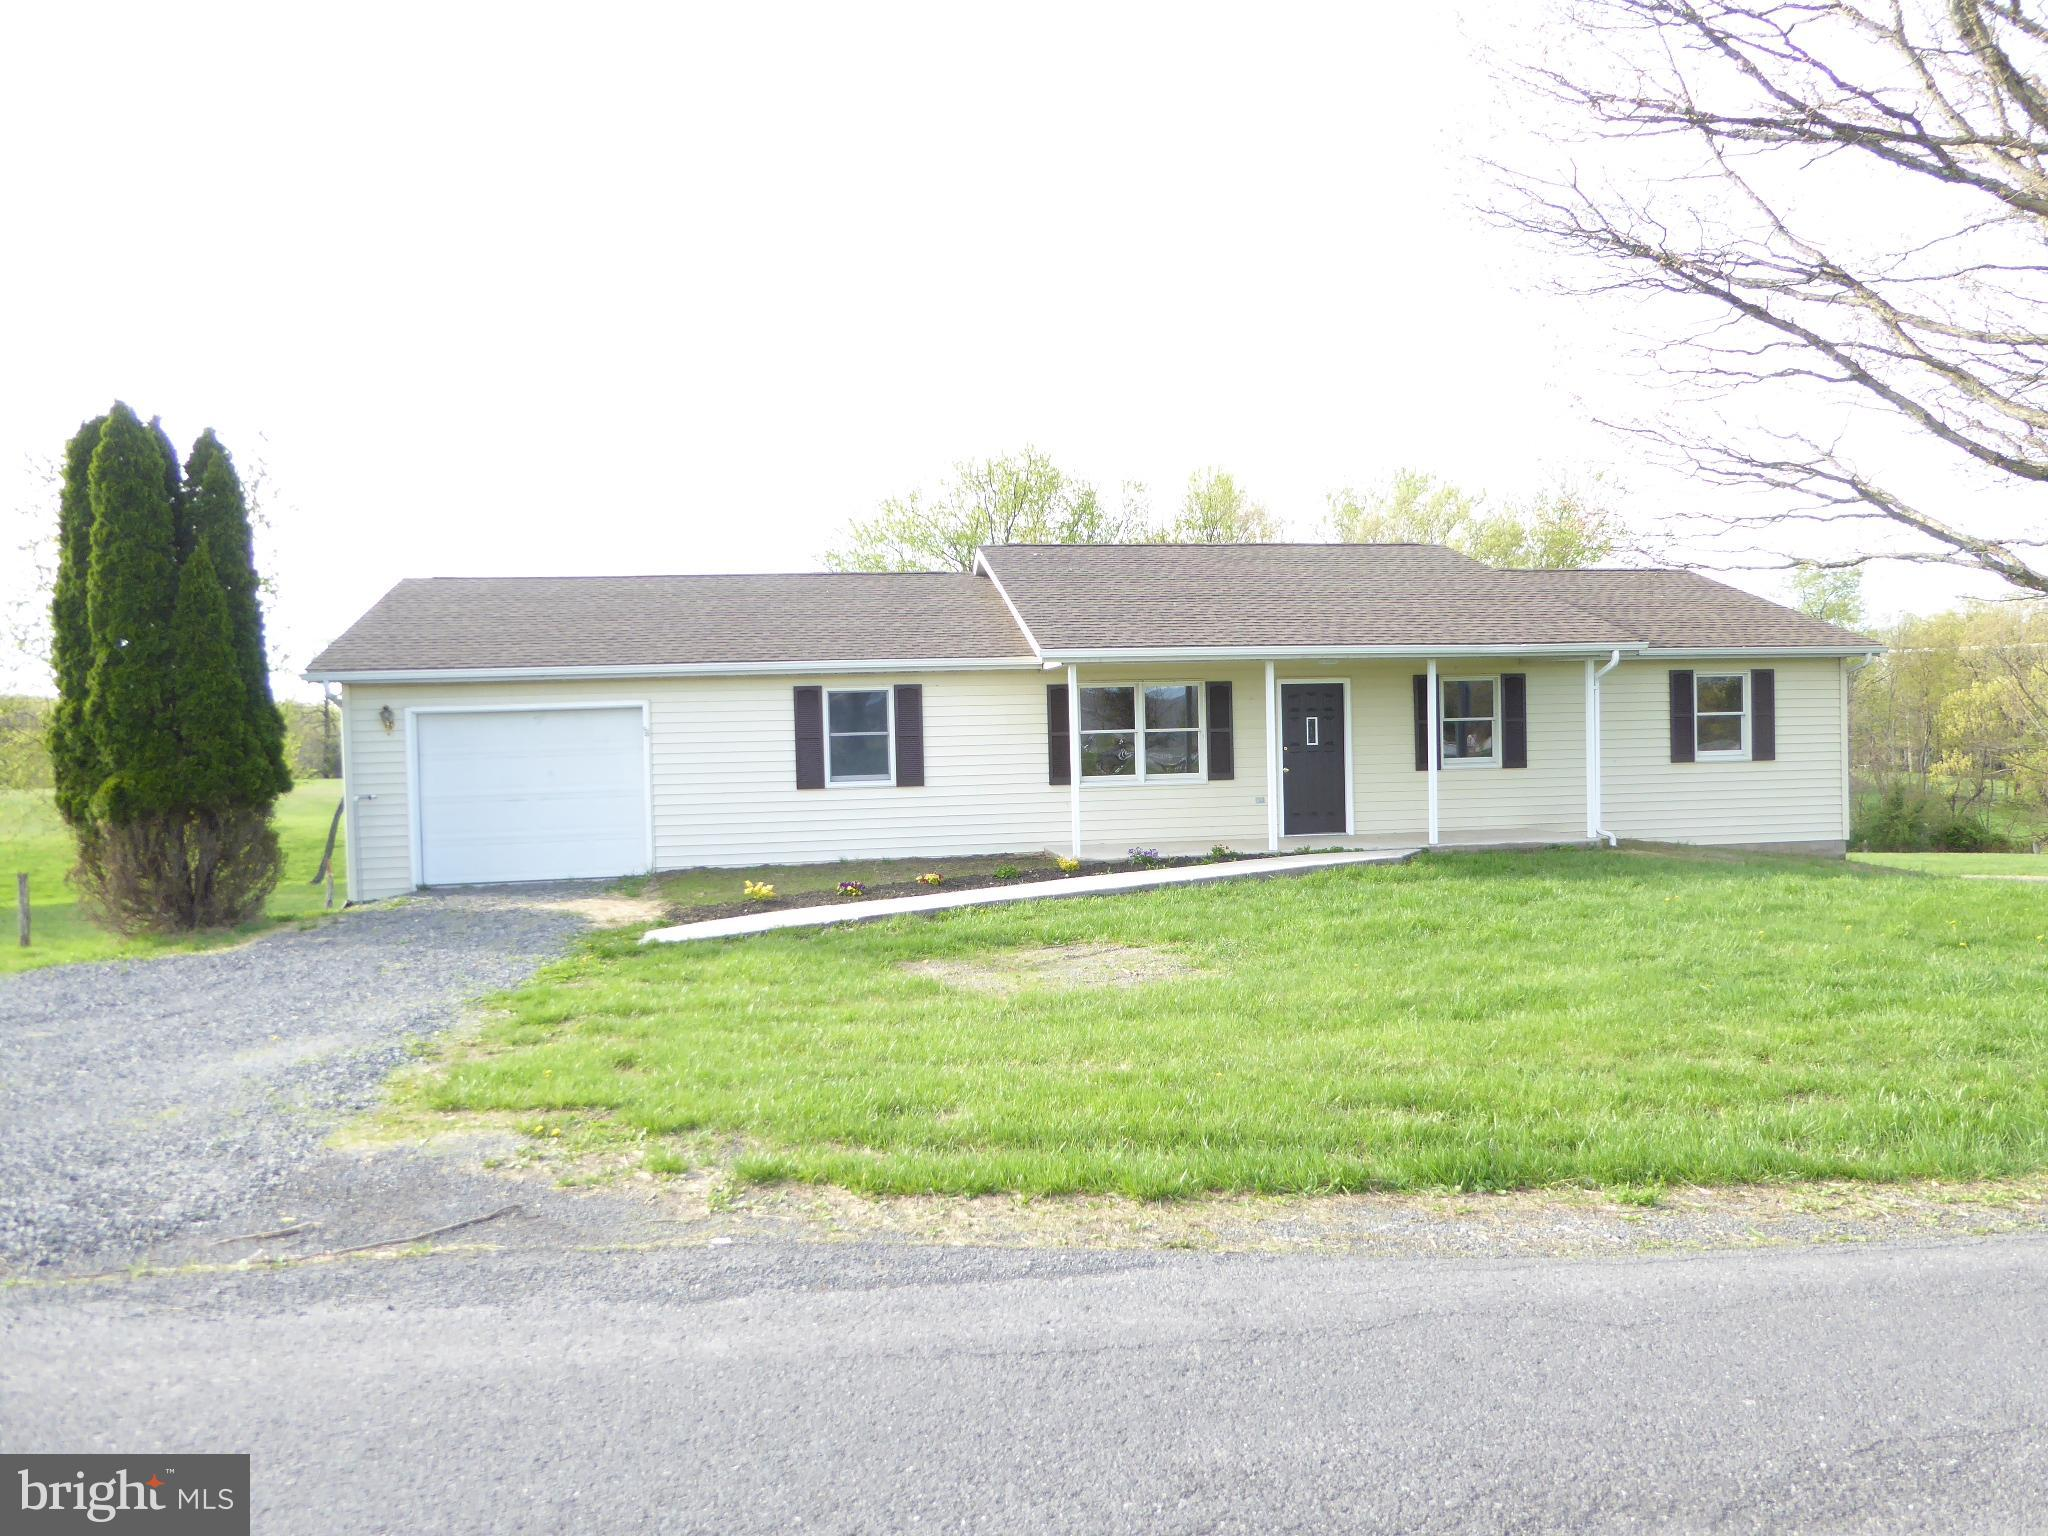 12030 JERSEY MOUNTAIN ROAD, POINTS, WV 25437